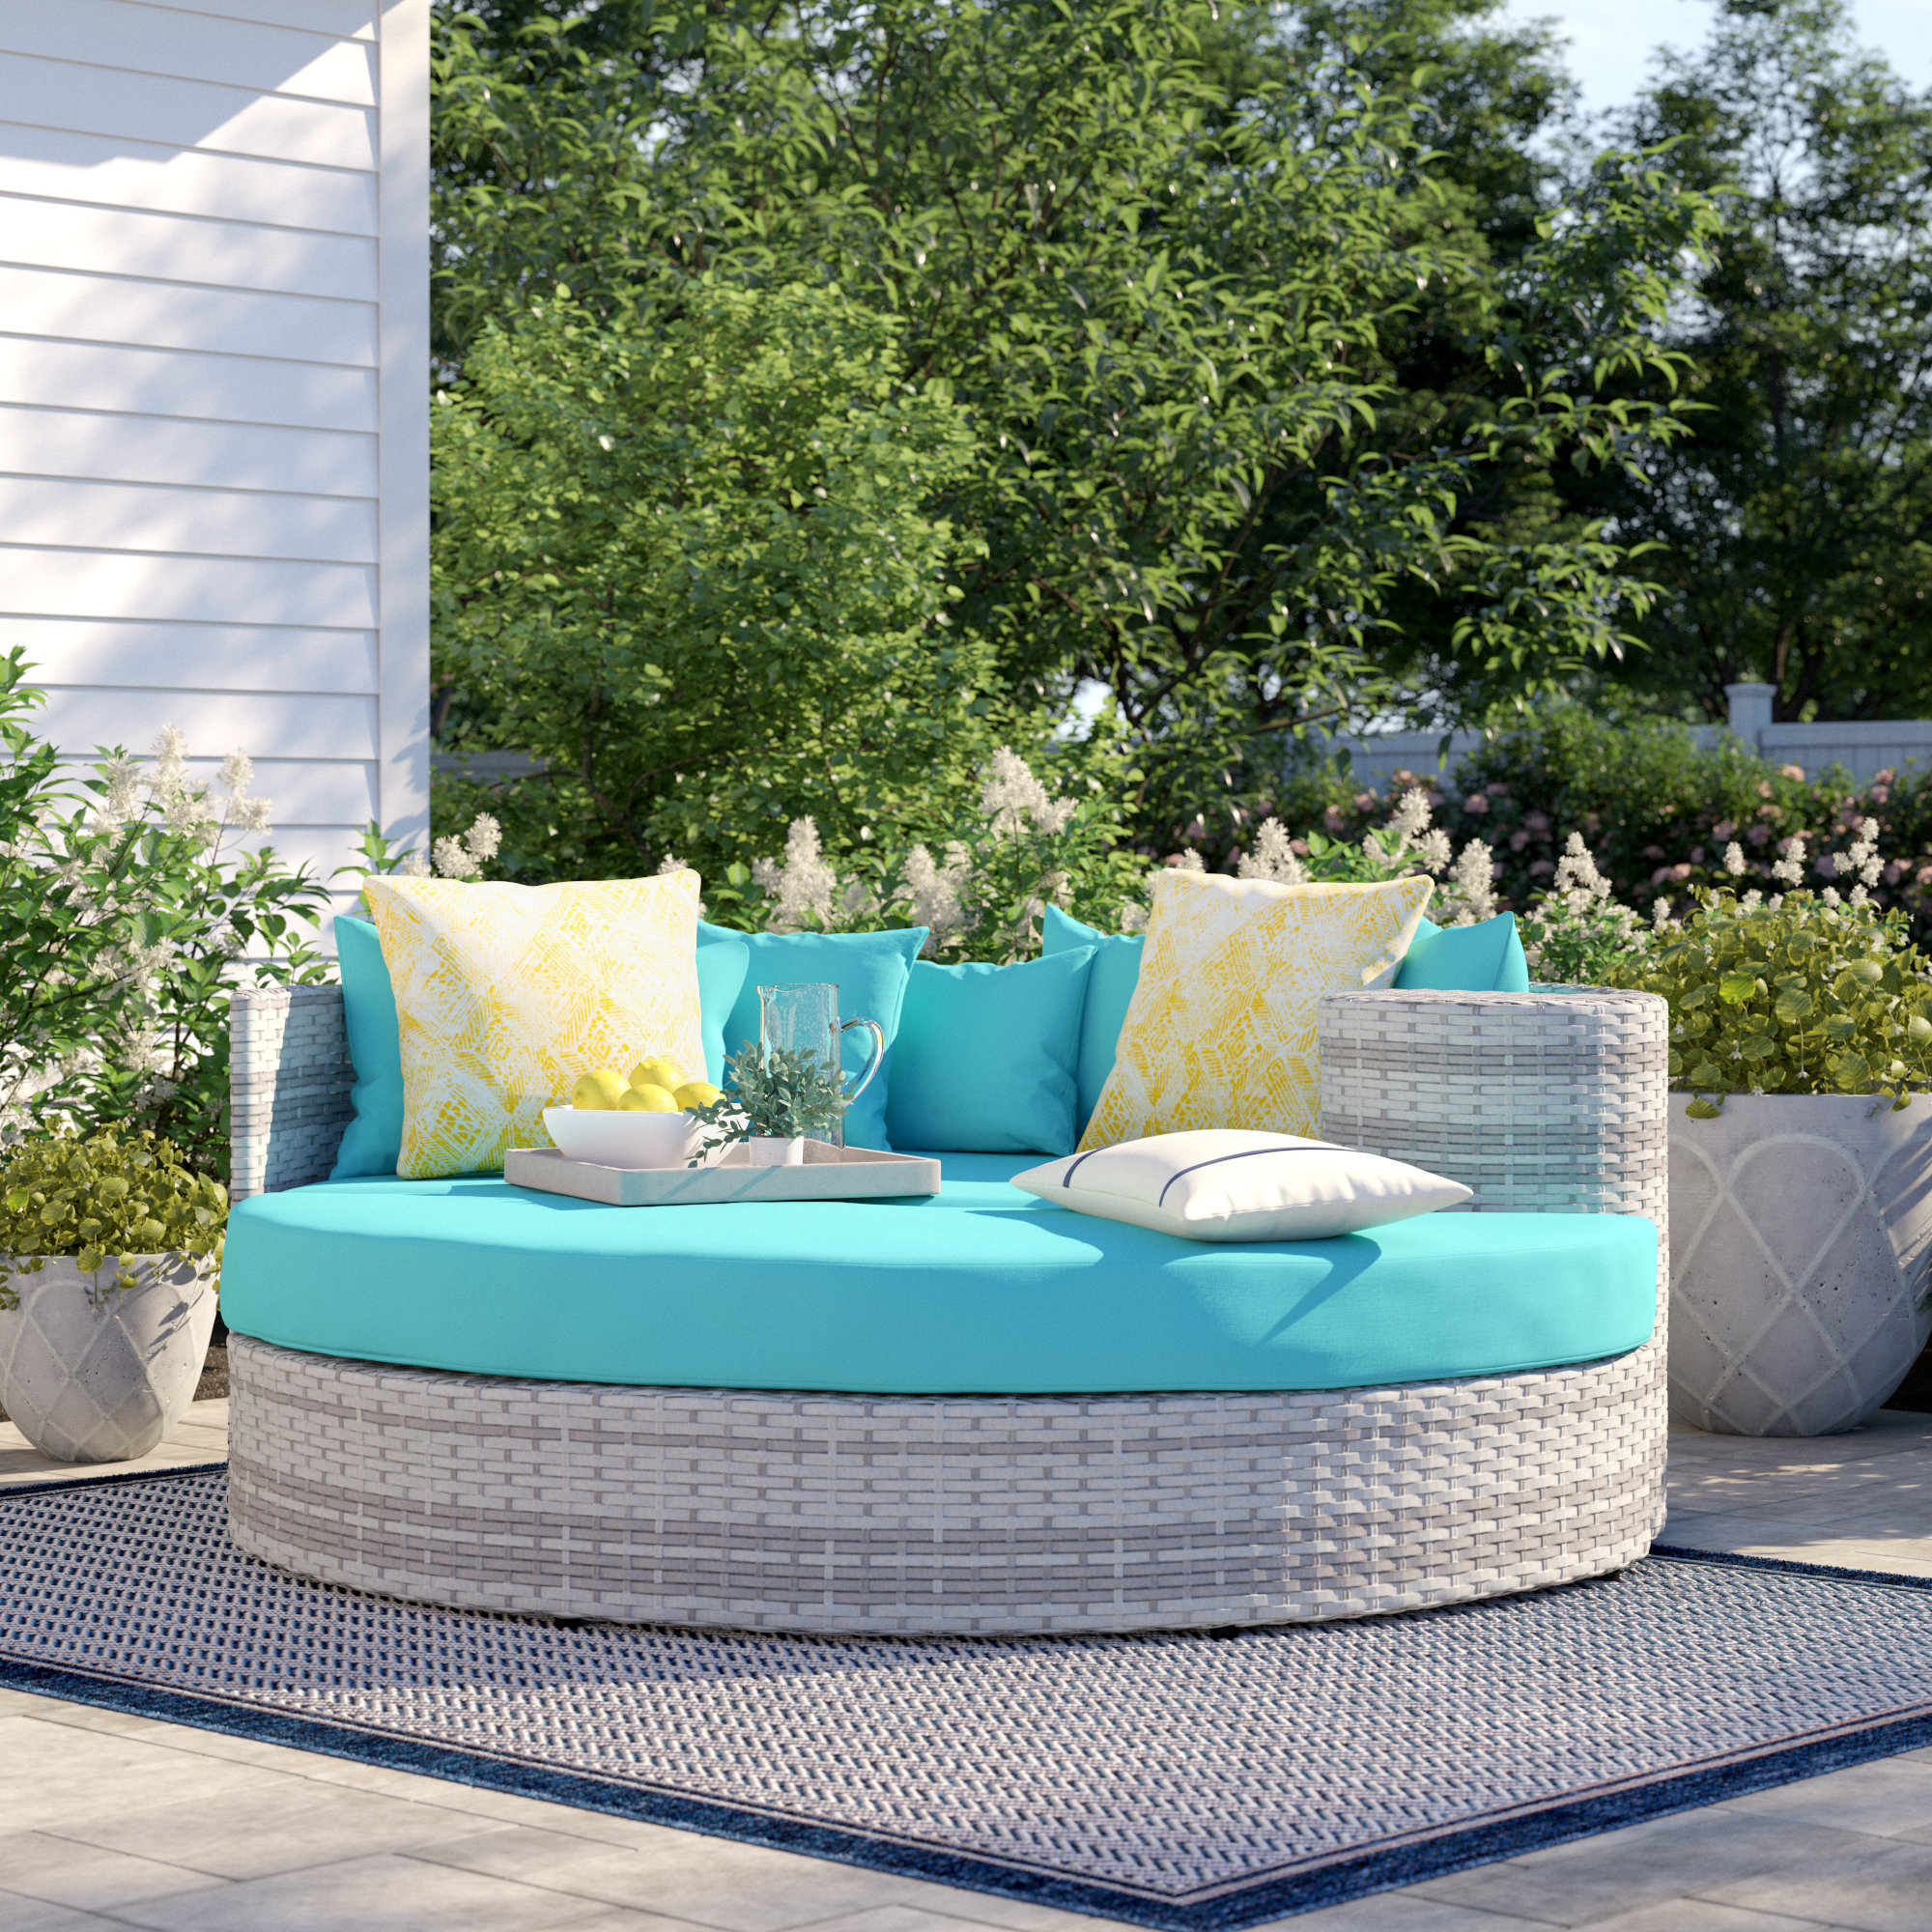 2019 Greening Outdoor Daybeds With Ottoman & Cushions Throughout Sol 72 Outdoor Falmouth Patio Daybed With Cushions & Reviews (View 10 of 20)